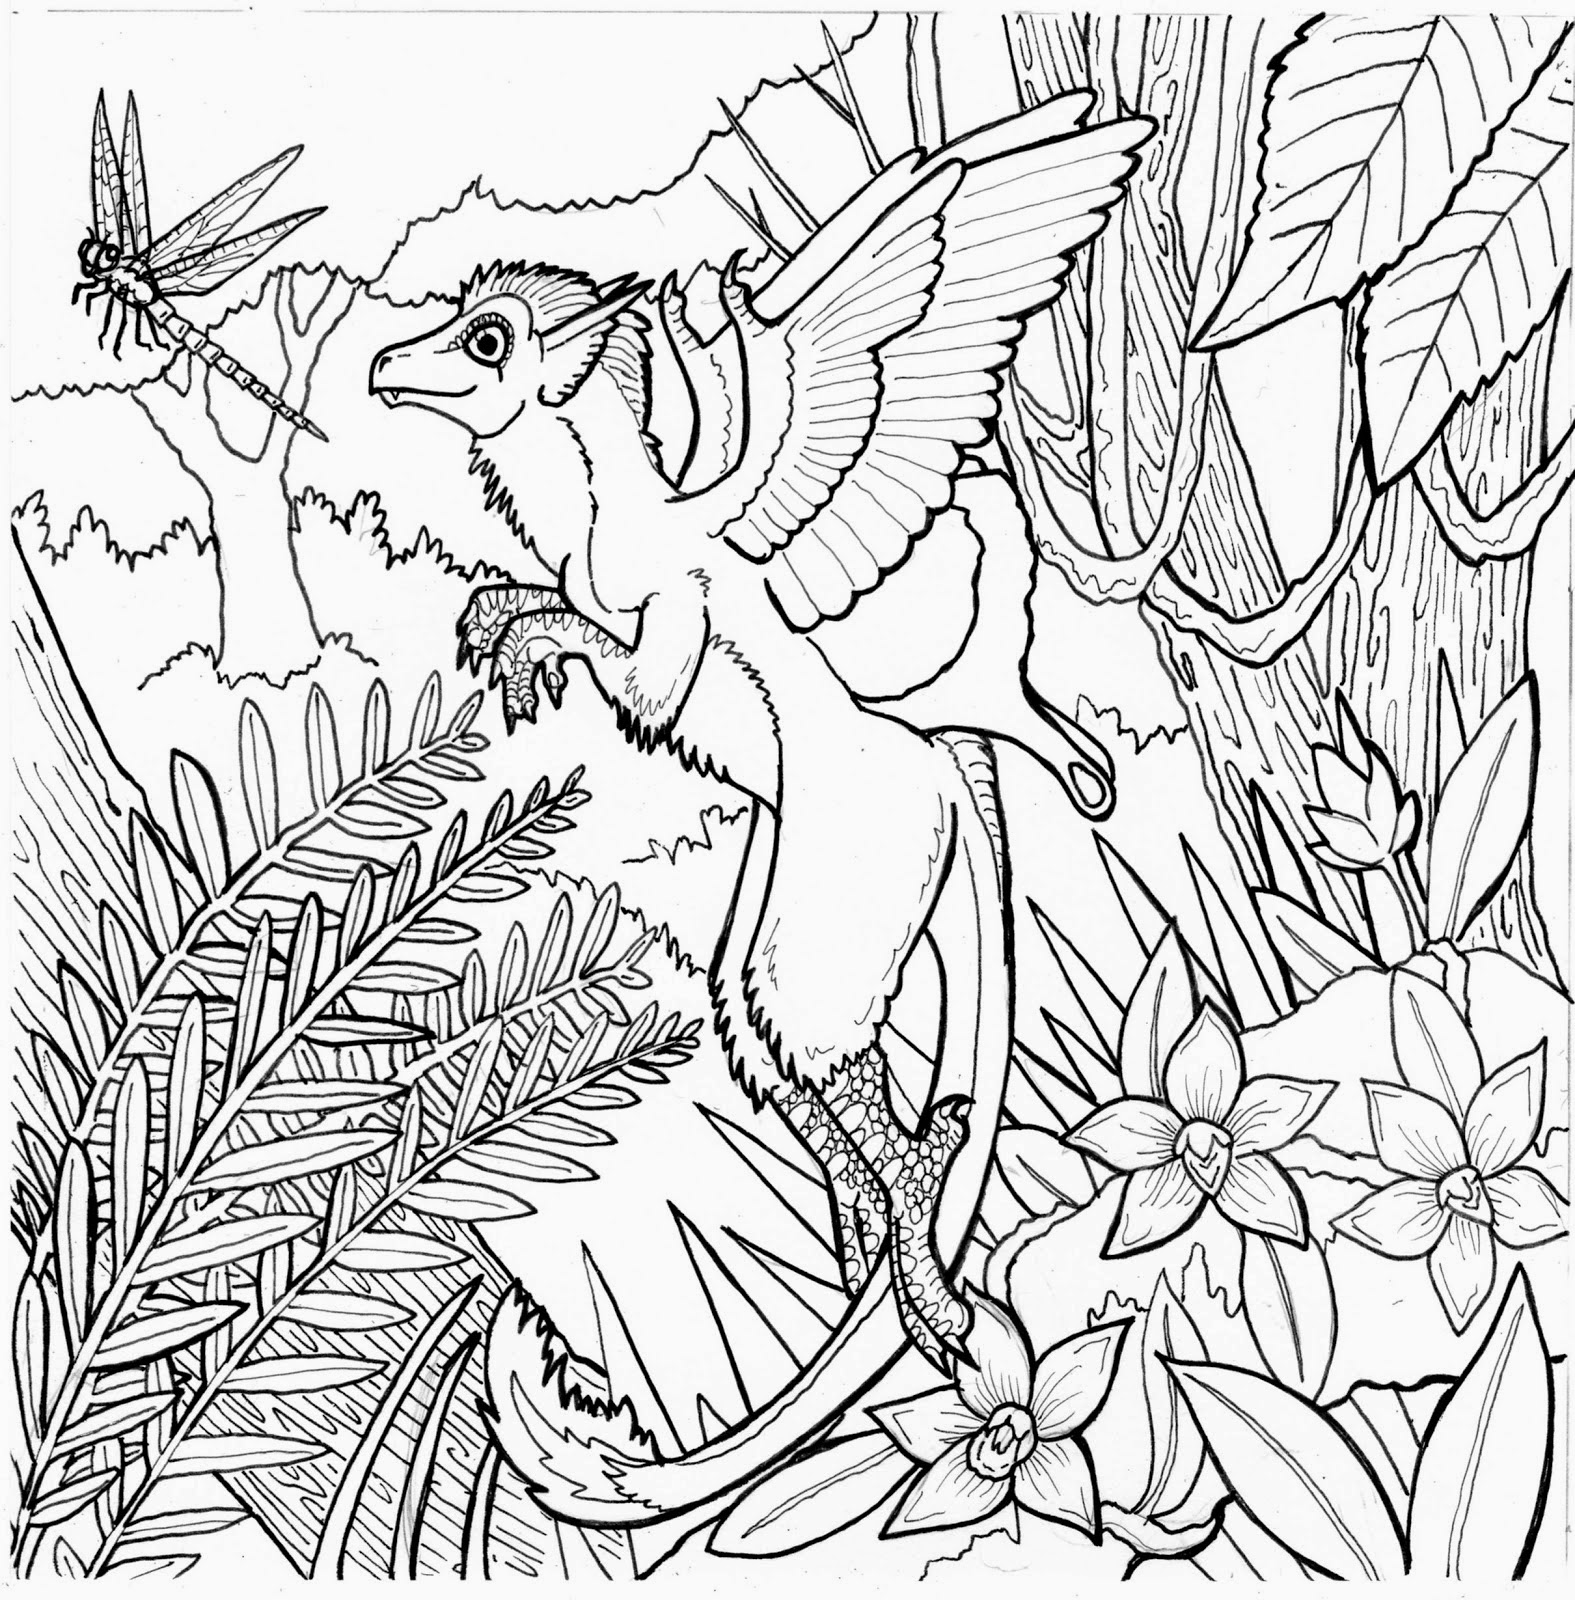 complicated coloring sheets complicated coloring pages to print download free coloring complicated sheets 1 1